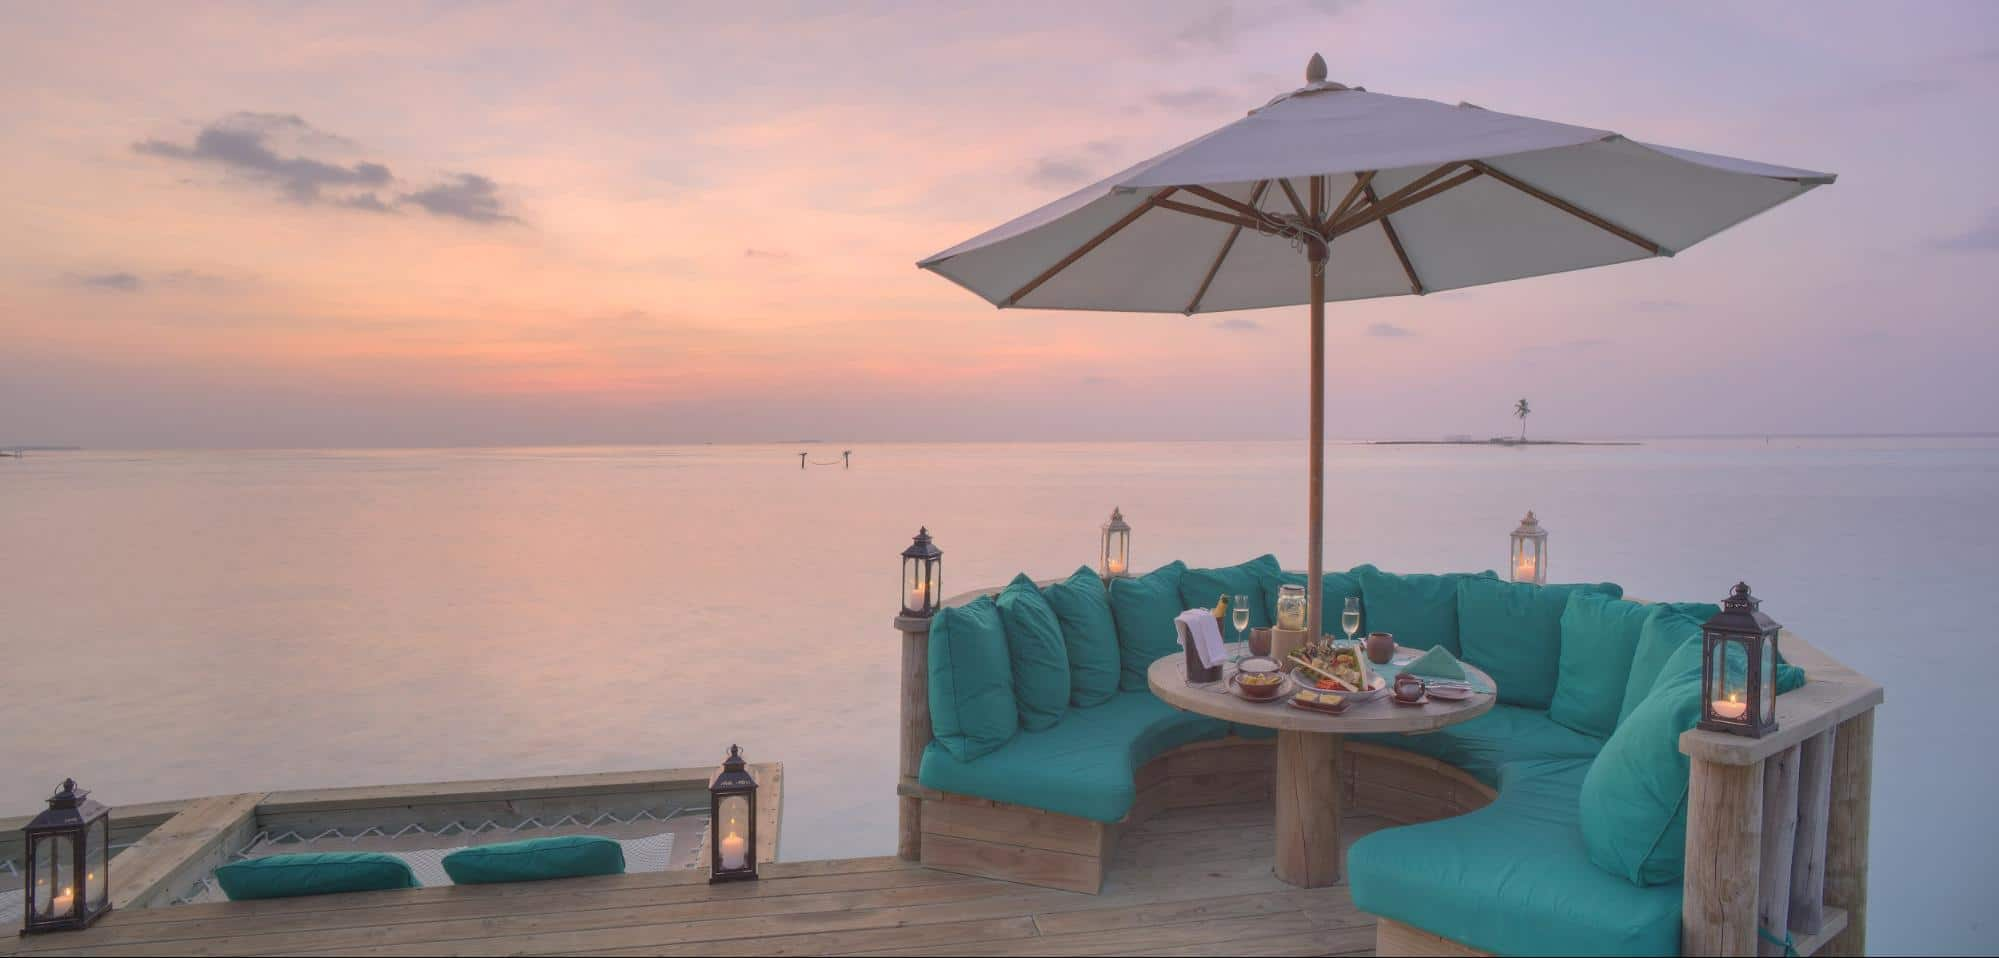 Sunset at the Overwater Bar jetty - Courtesy of Gili Lankanfushi